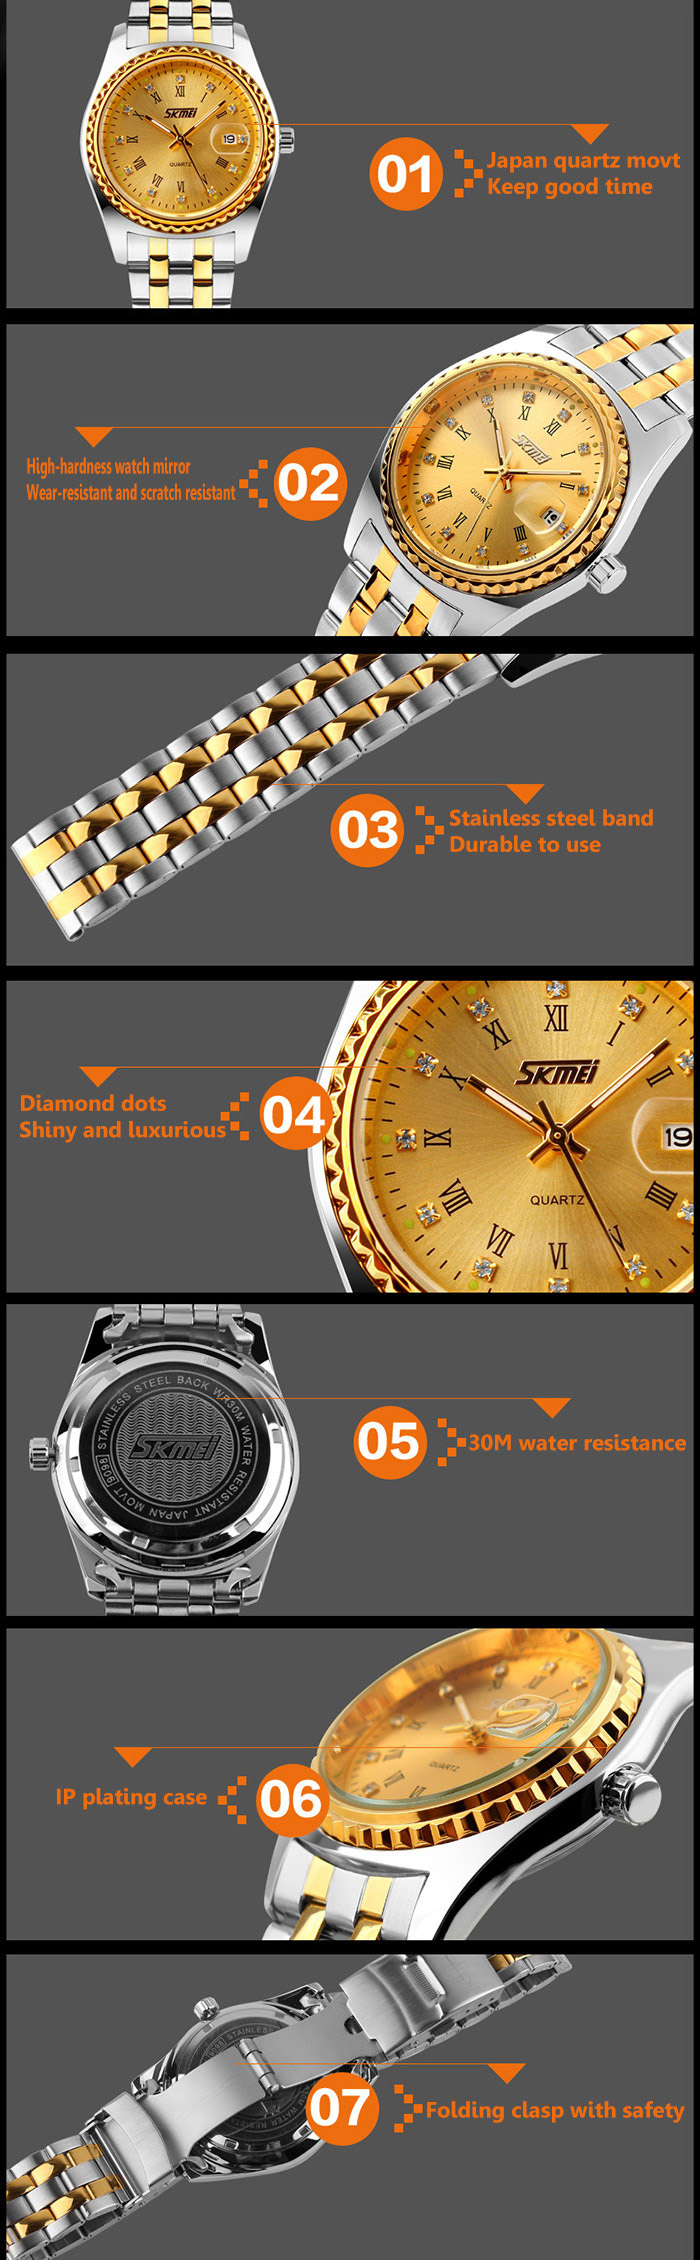 Skmei 9098 Water Resistant Japan Movt Quartz Watch Date Display Stainless Steel Band for Men